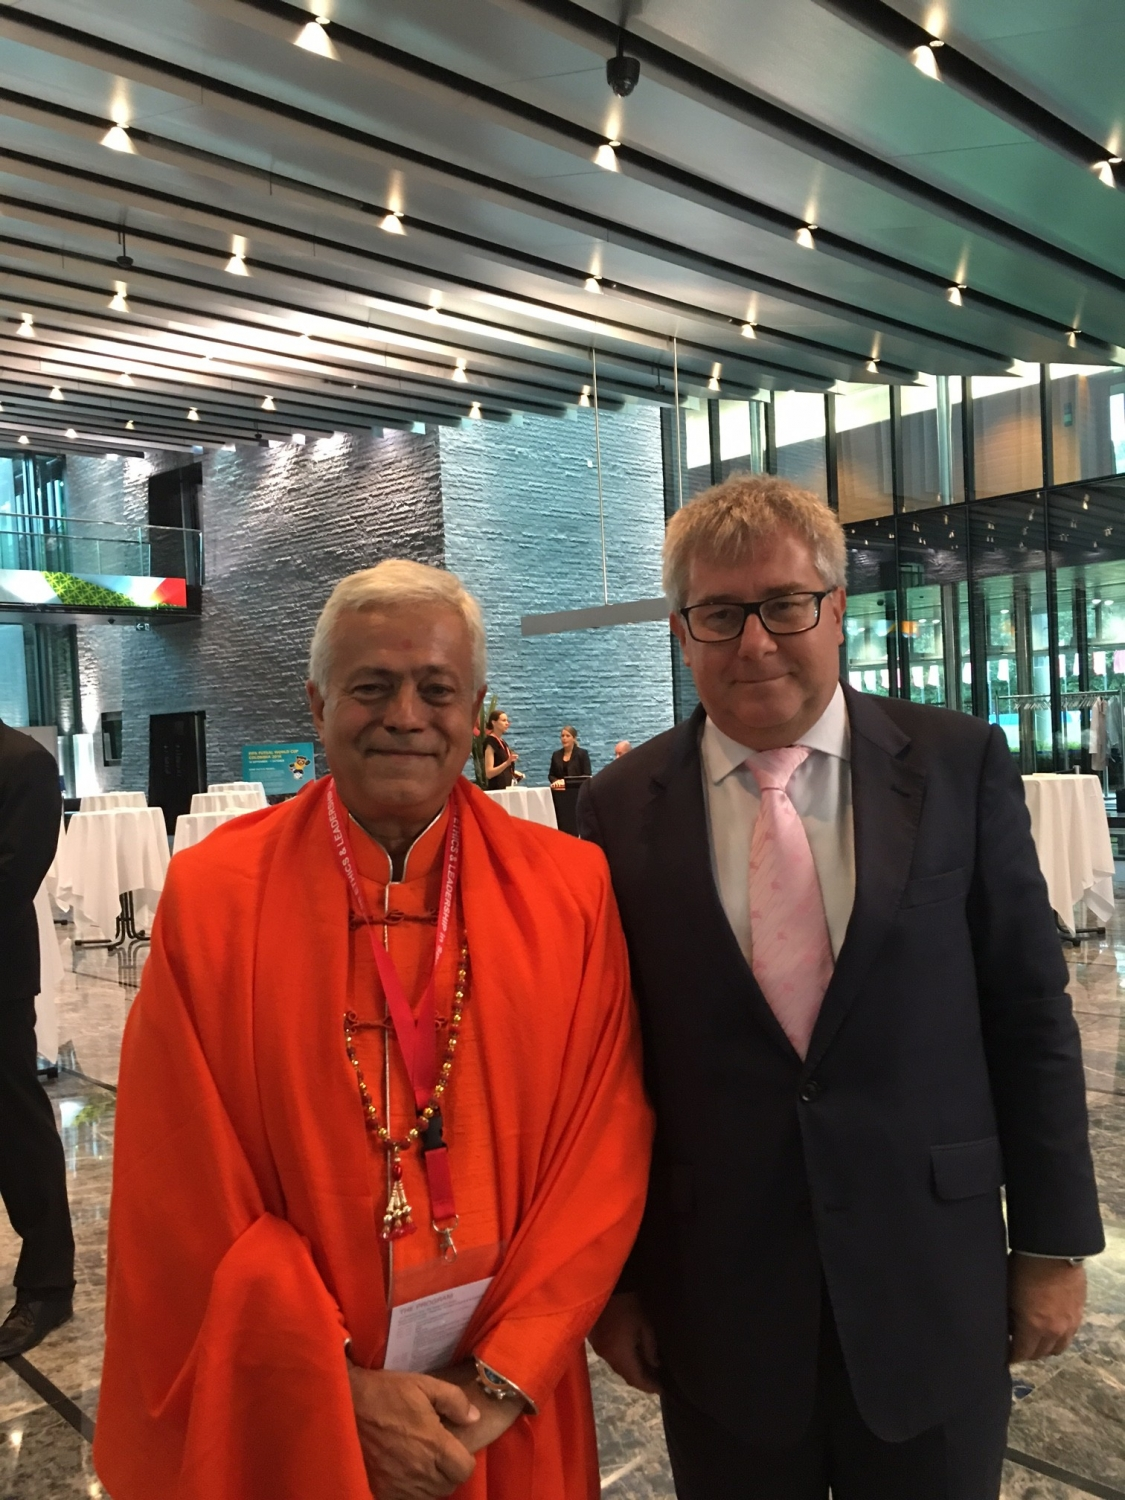 H.H. Jagat Guru Amrta Súryánanda Mahá Rája with the Hon. Mr. Ryszard Czarnecki, Vice President of the European Parliament